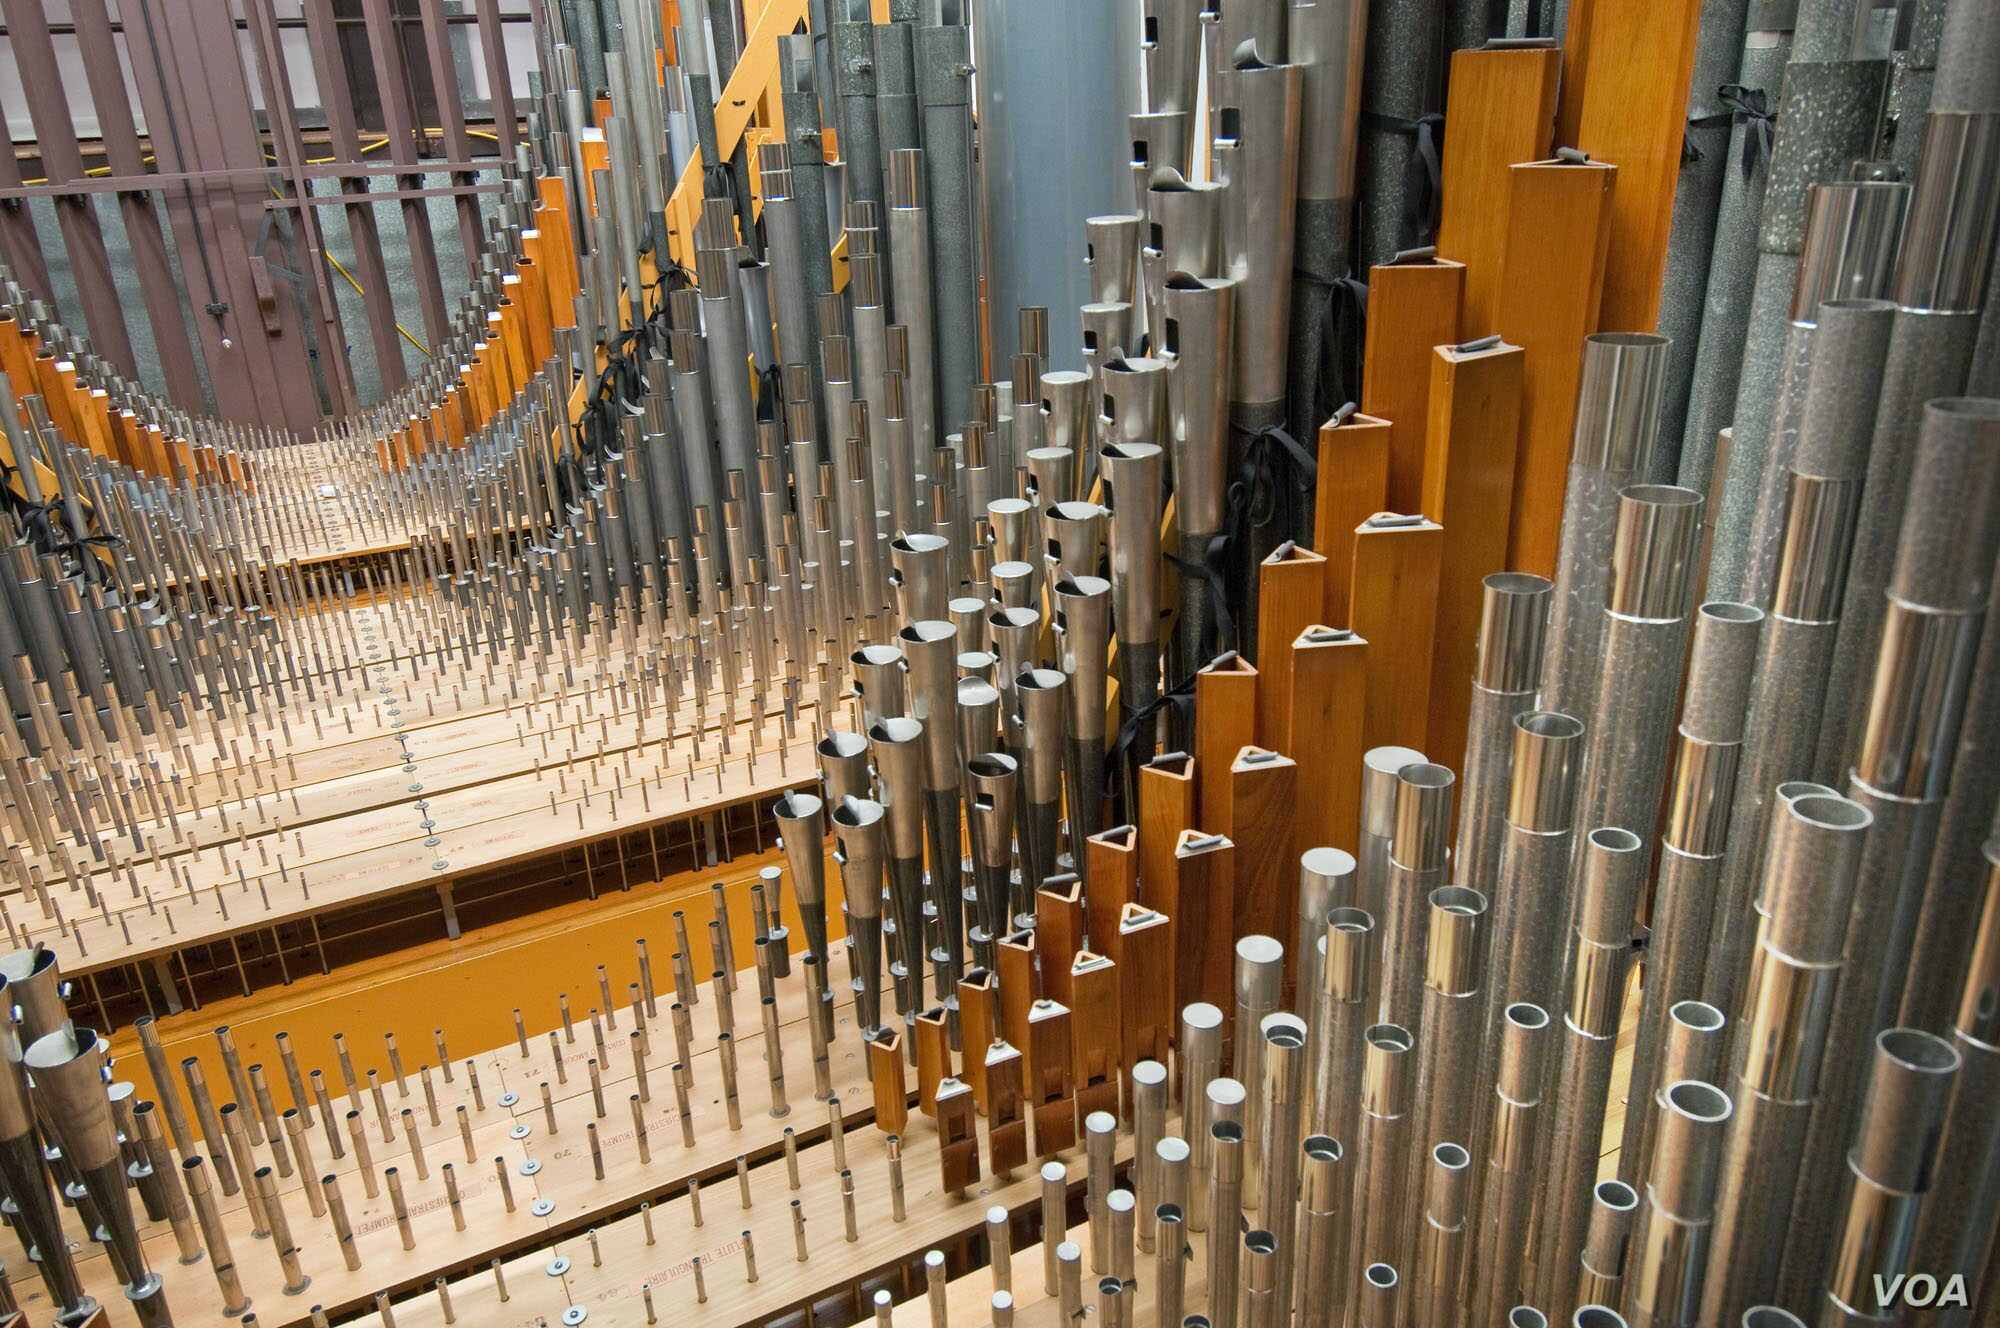 Competition Pushes the Limits of Longwood Gardens Organ